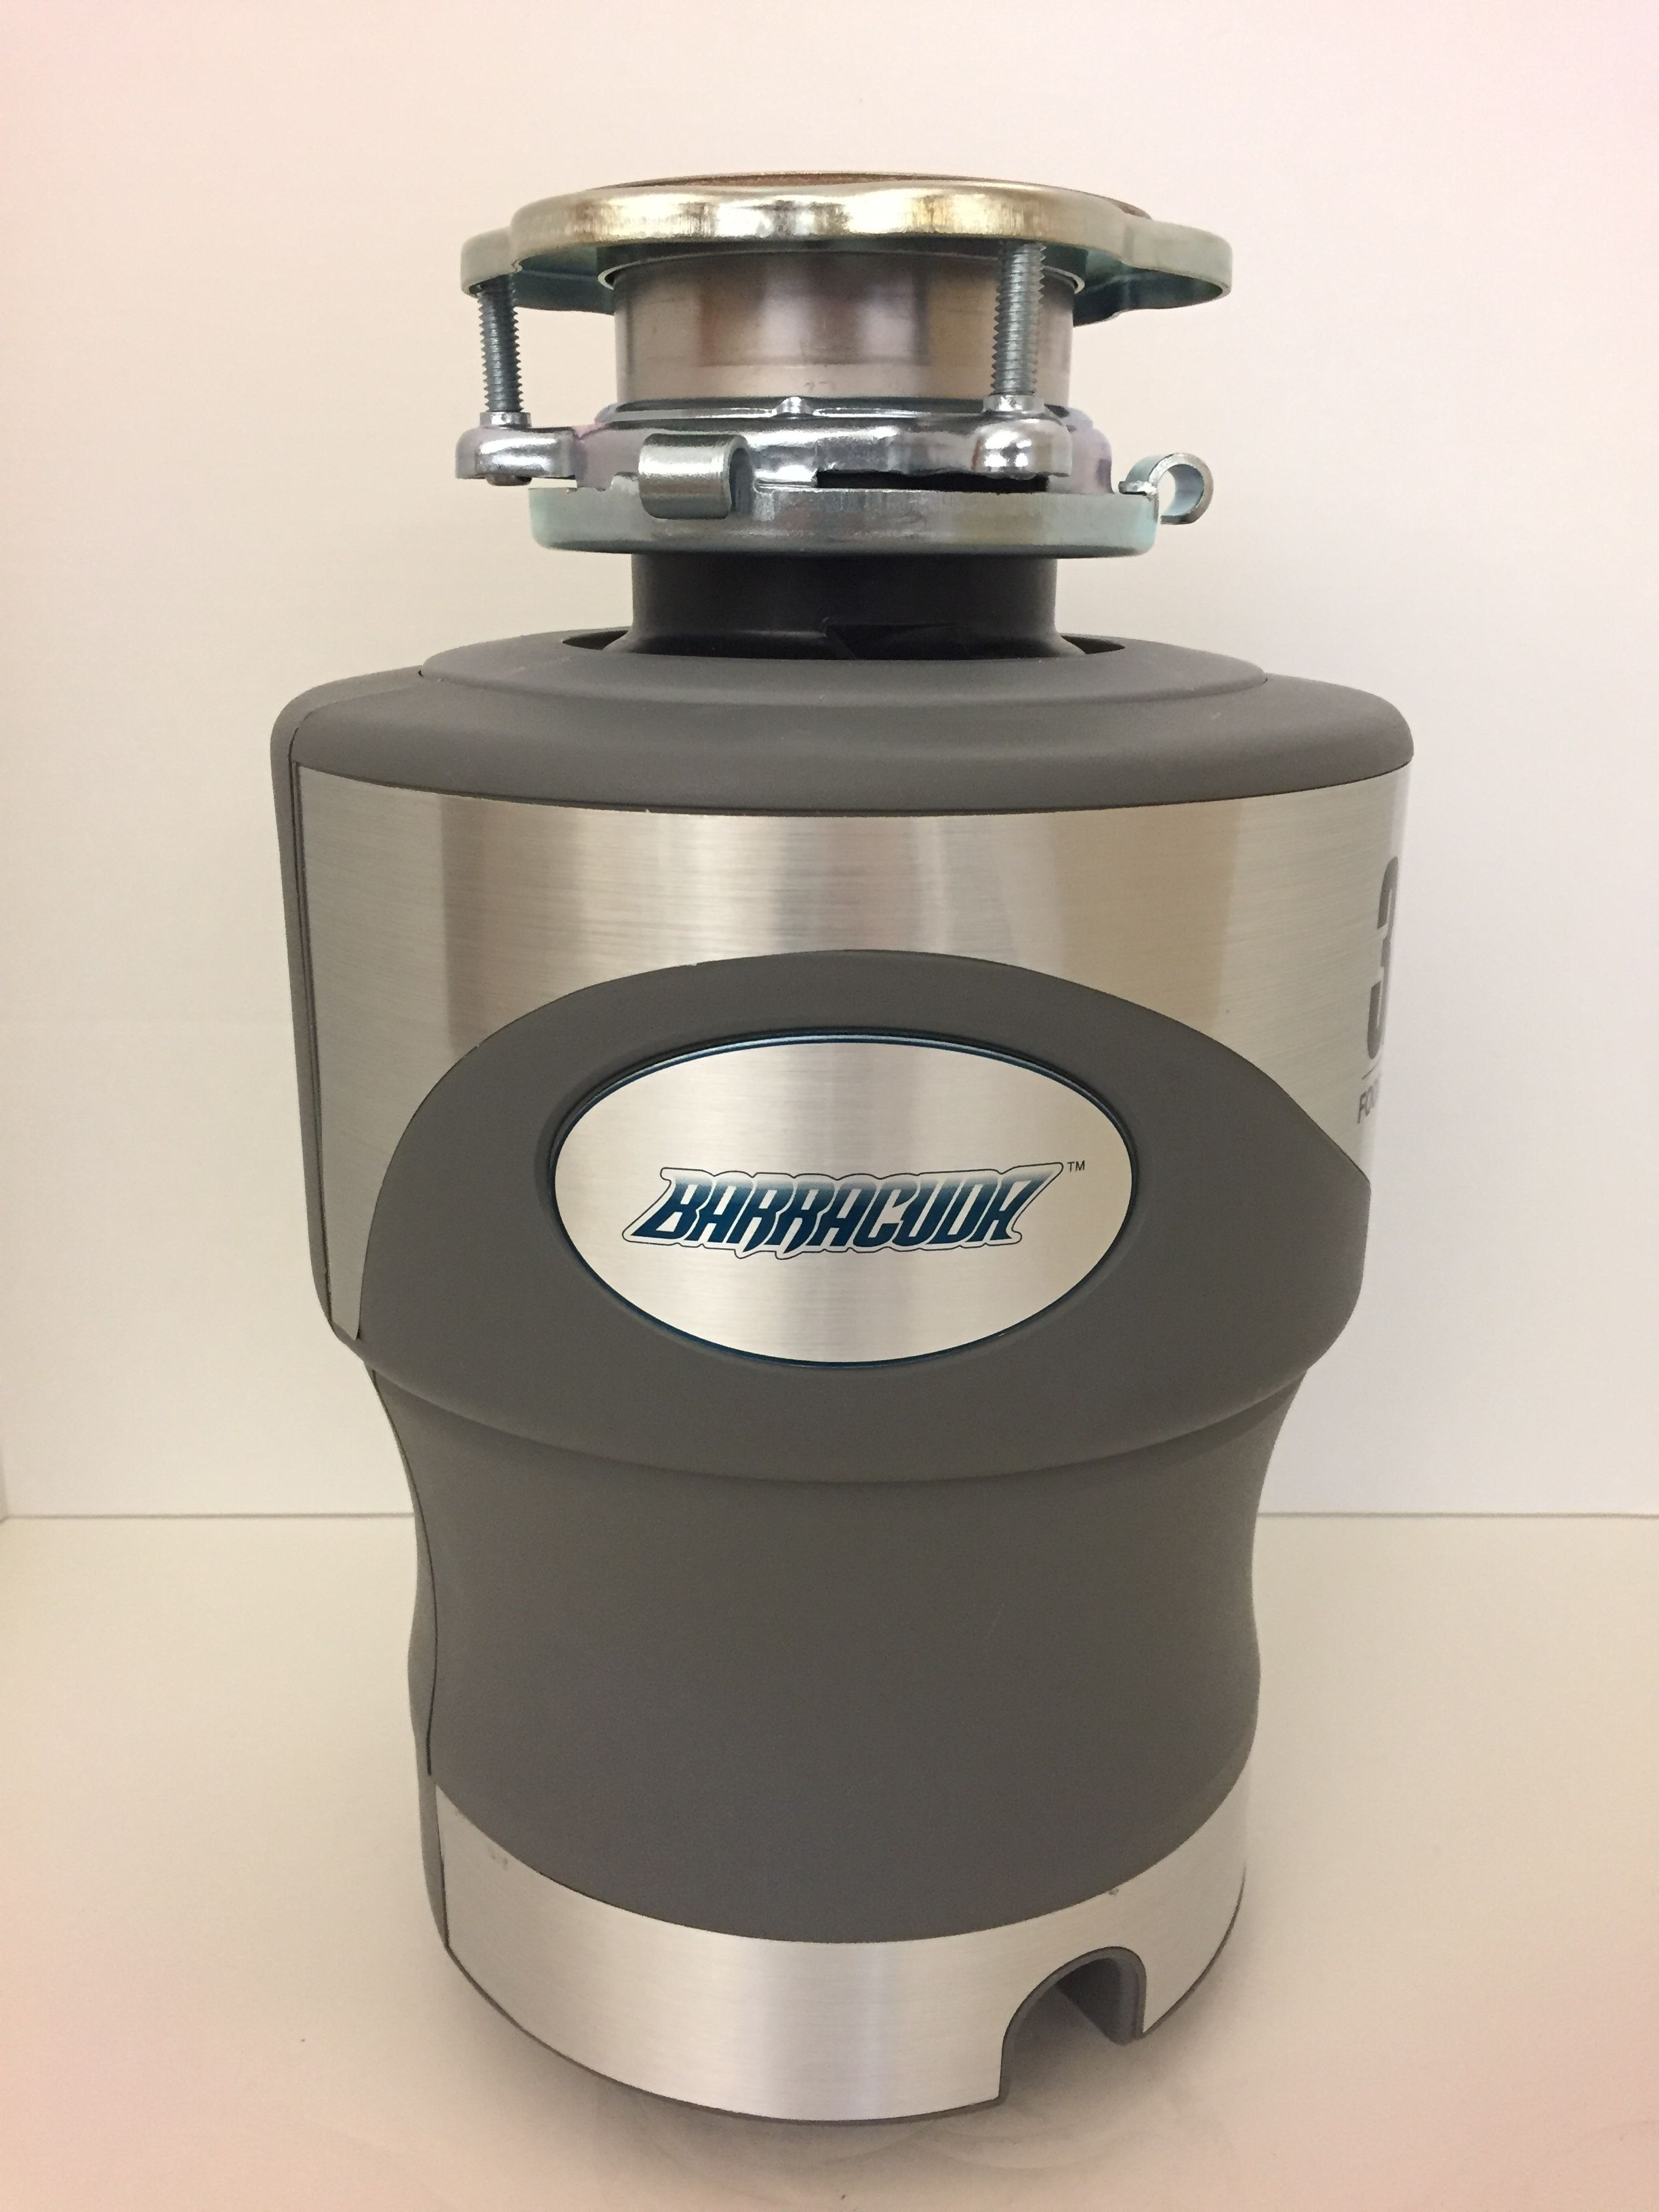 Anaheim And Moen Recall Garbage Disposals Due To Impact Hazard